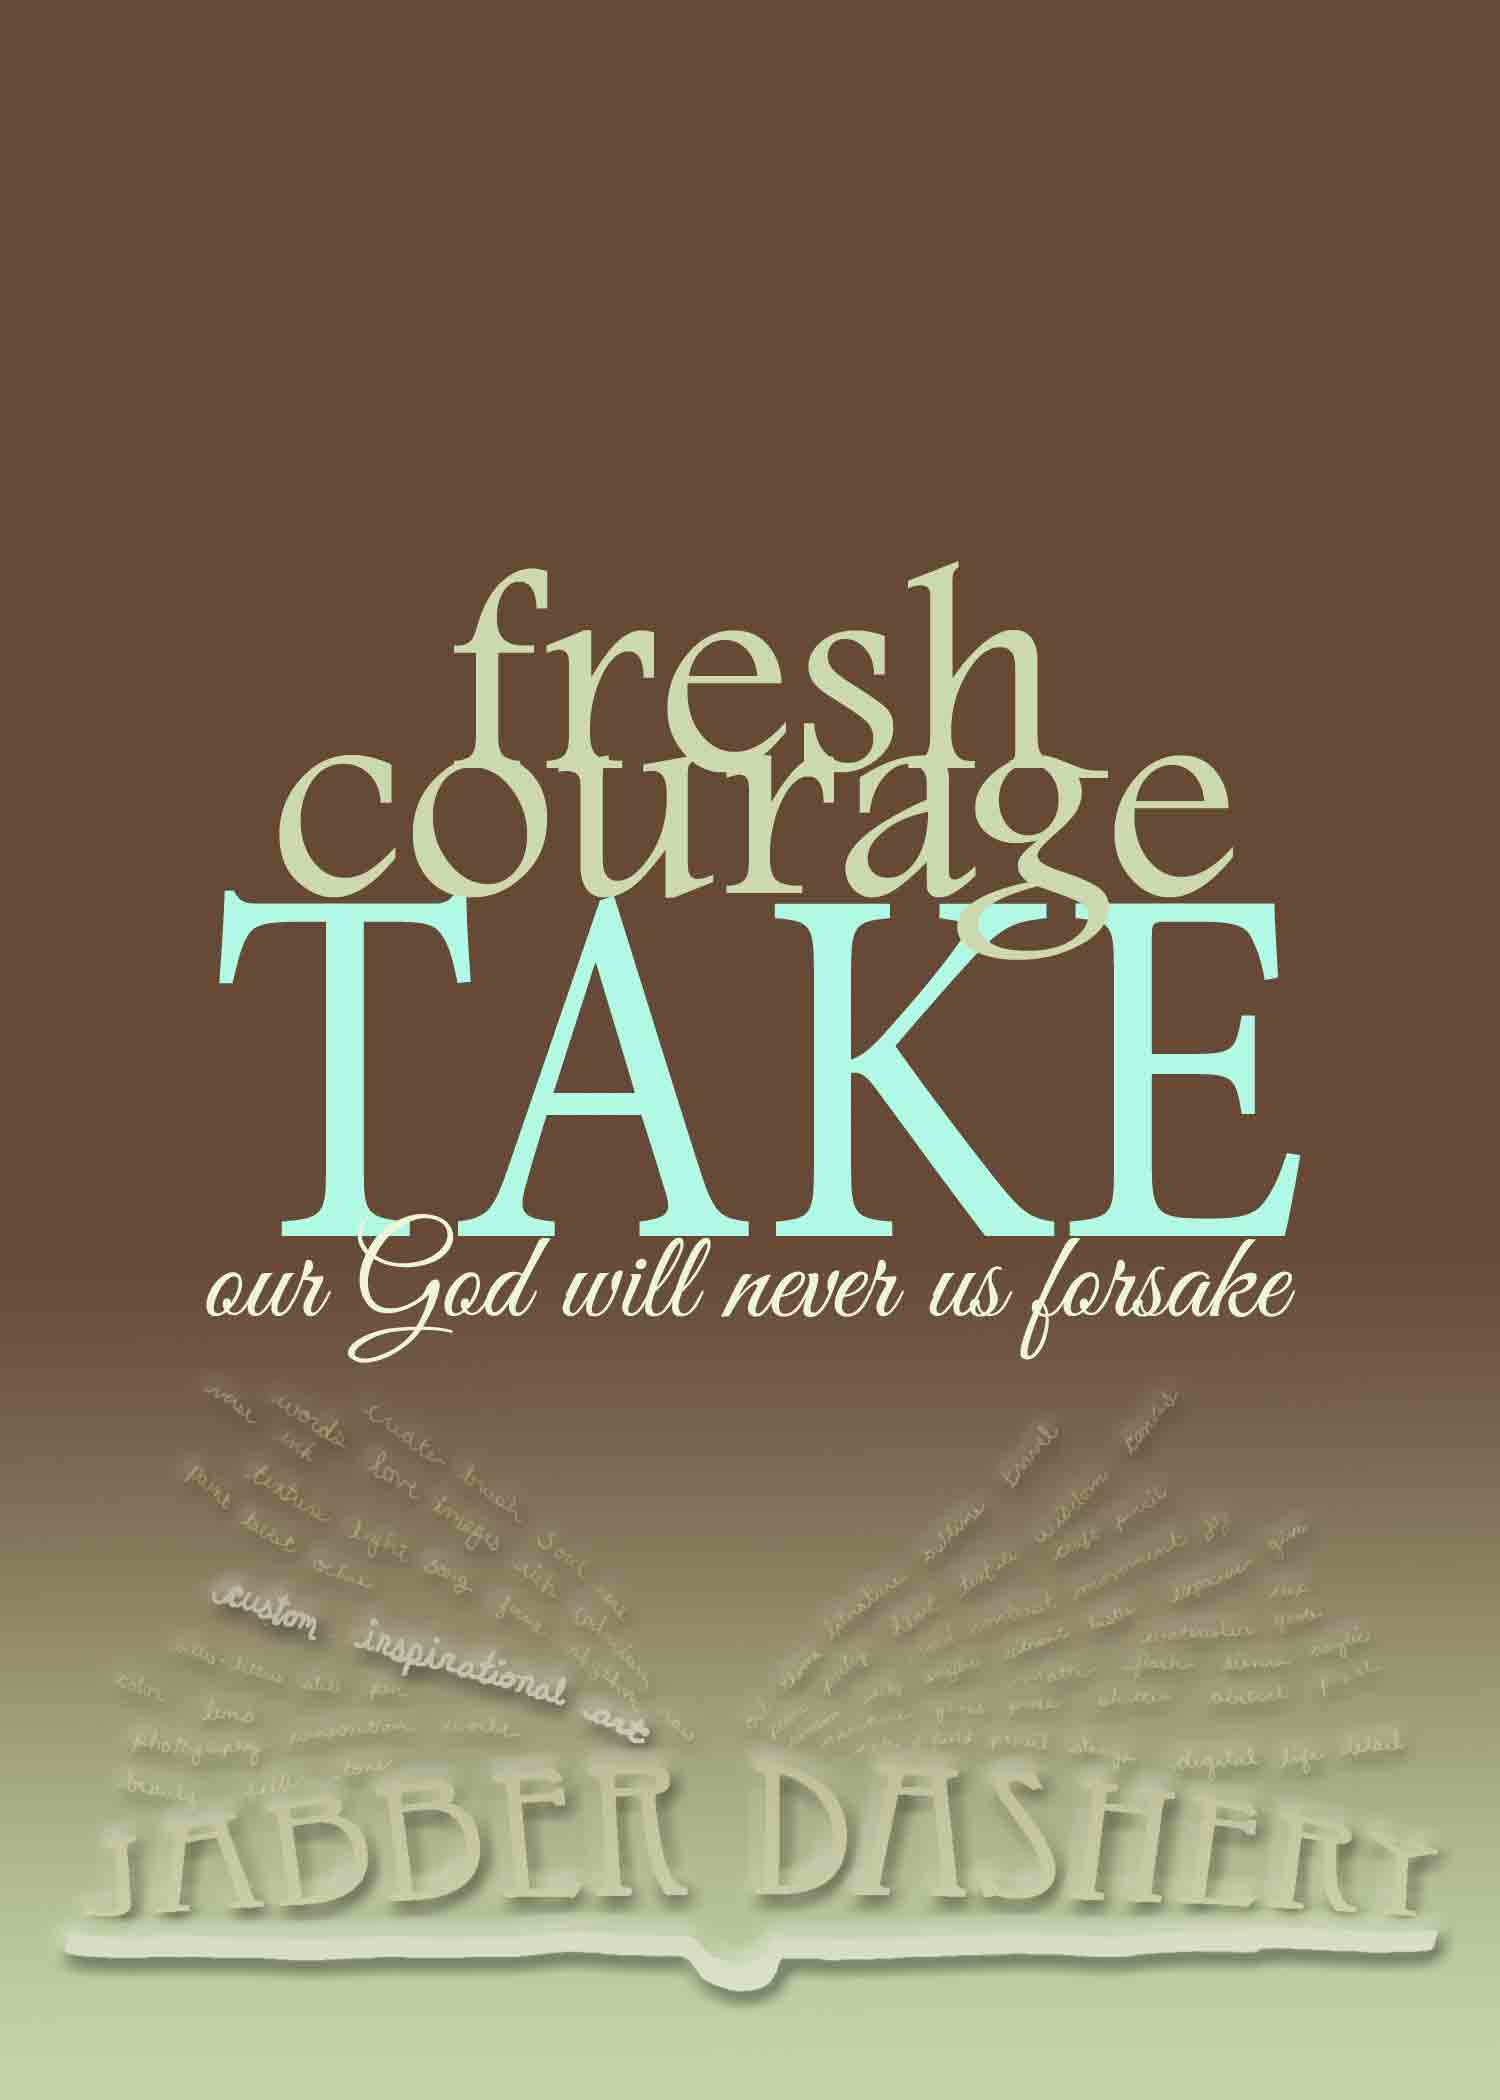 Lds Quotes About Courage Quotesgram